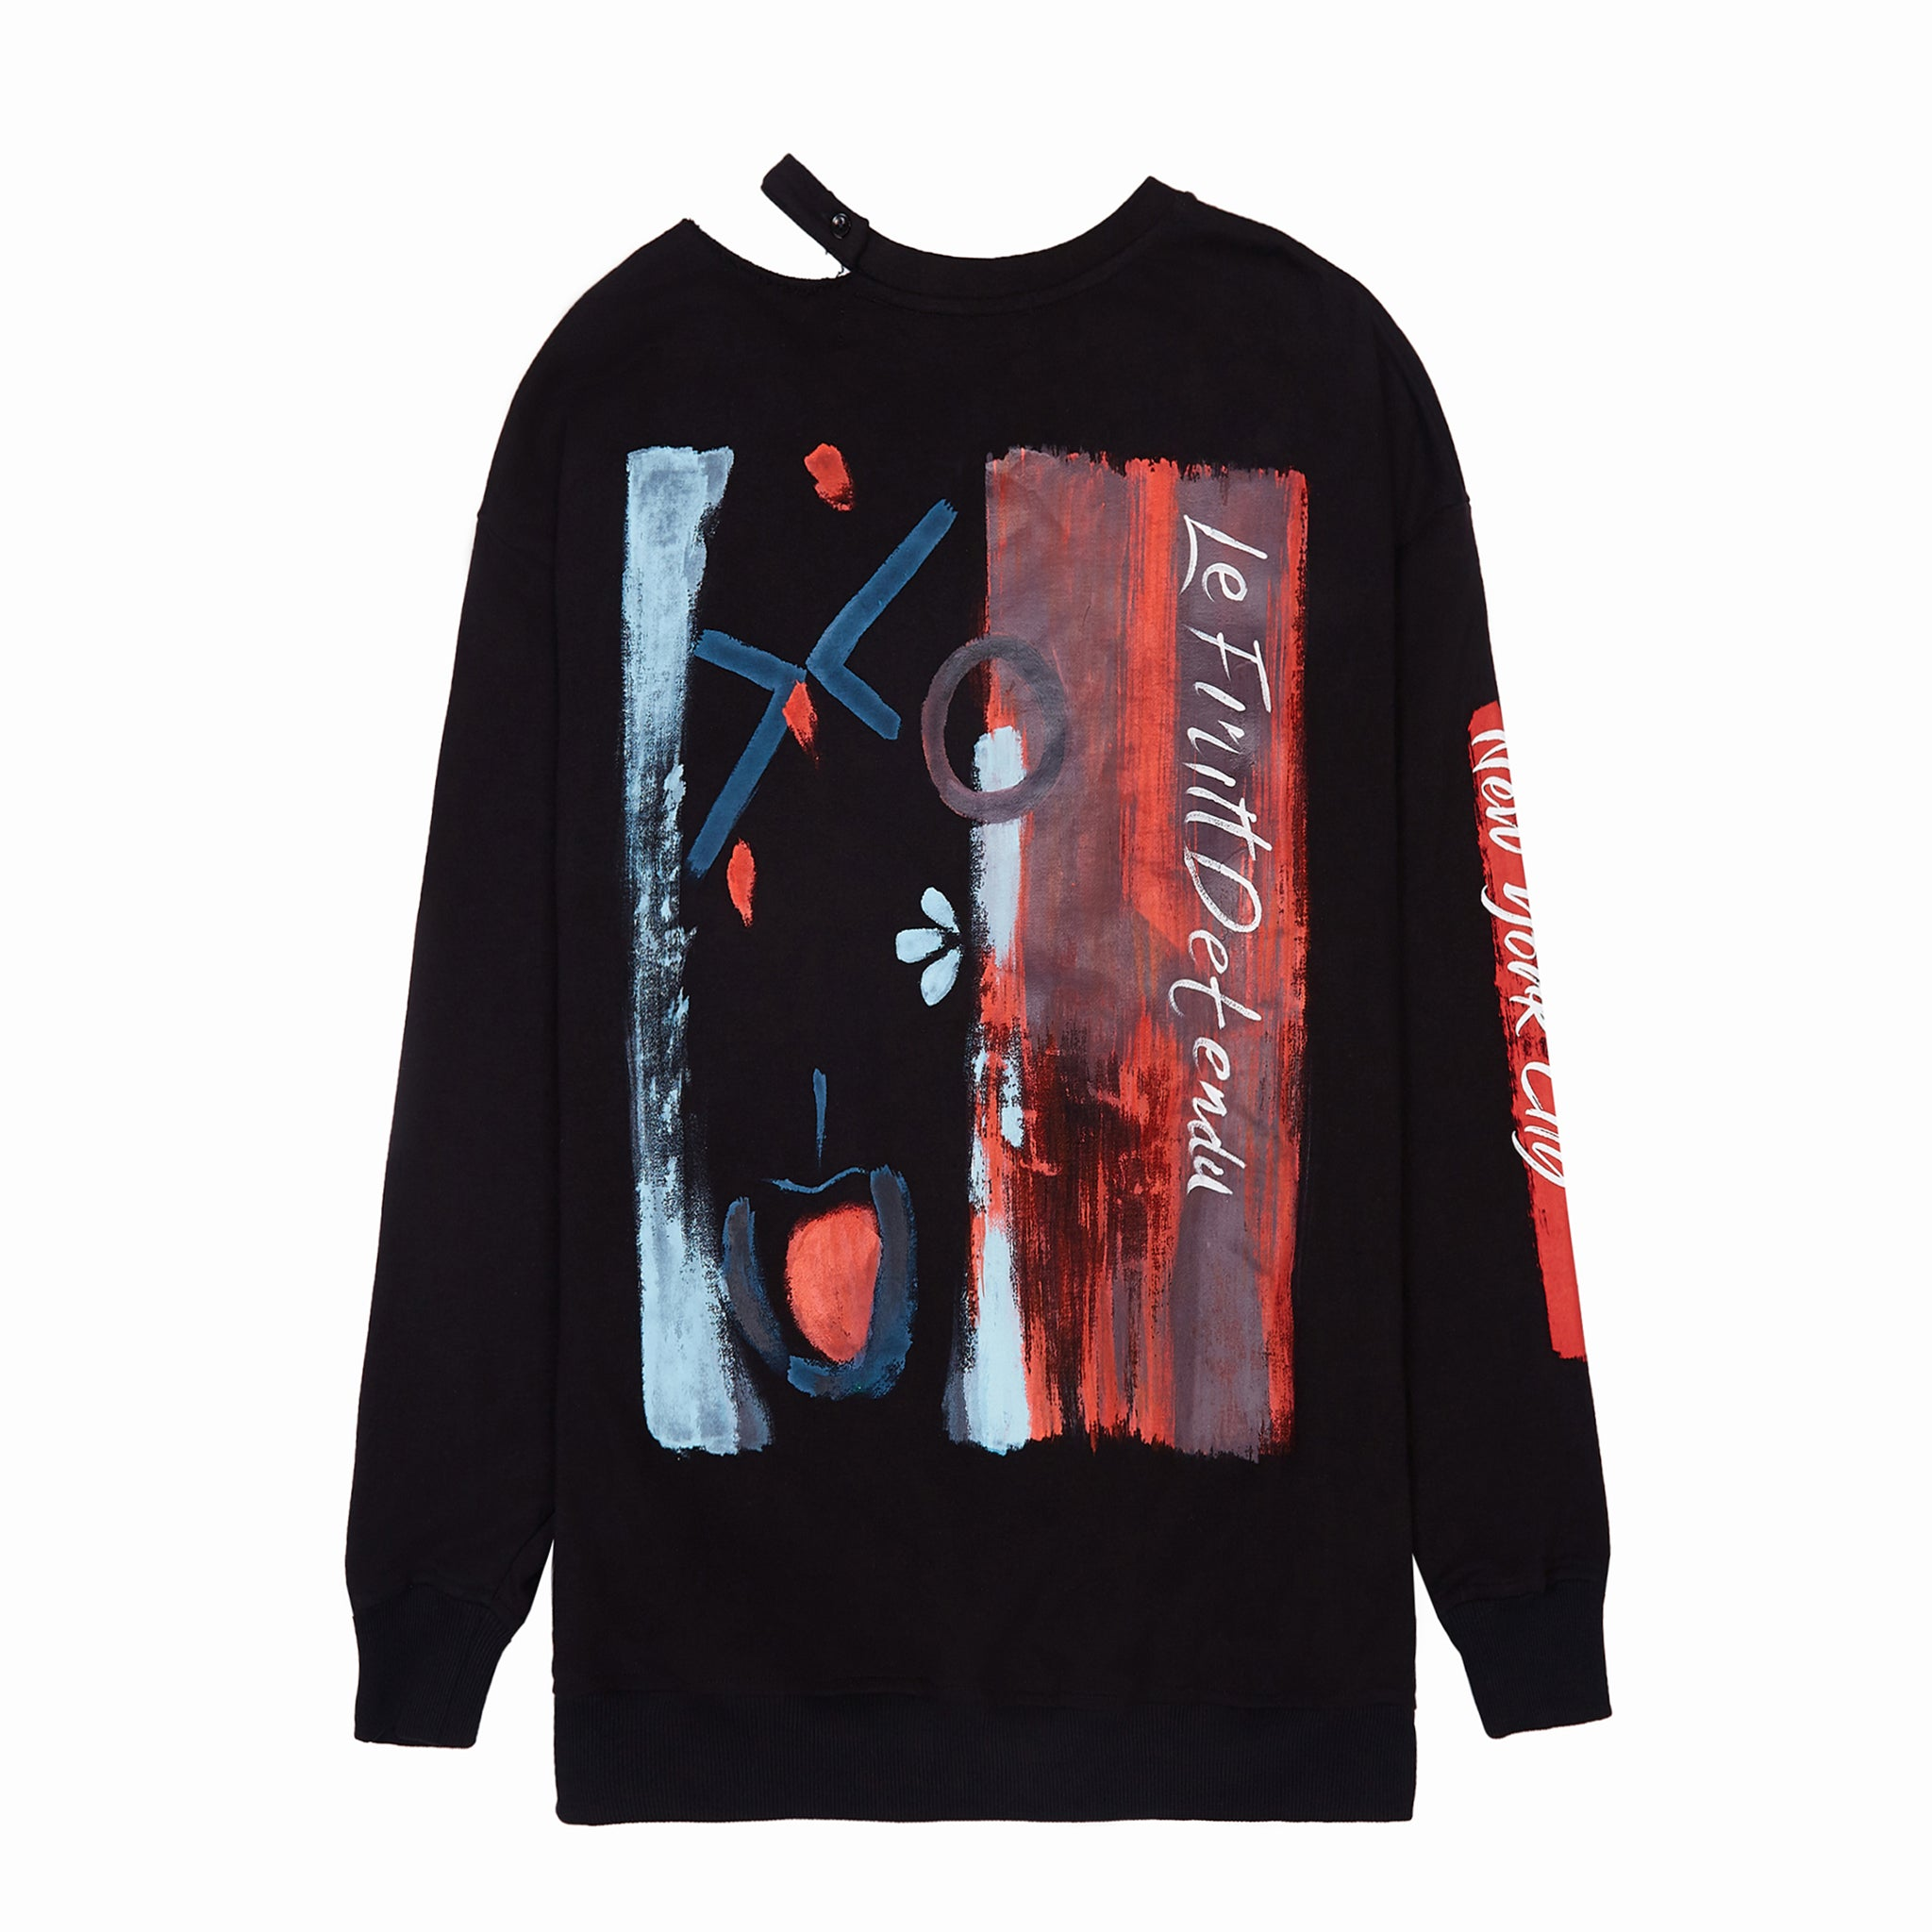 Load image into Gallery viewer, Le Fruit Defendu Betrayal Sweatshirt - Black